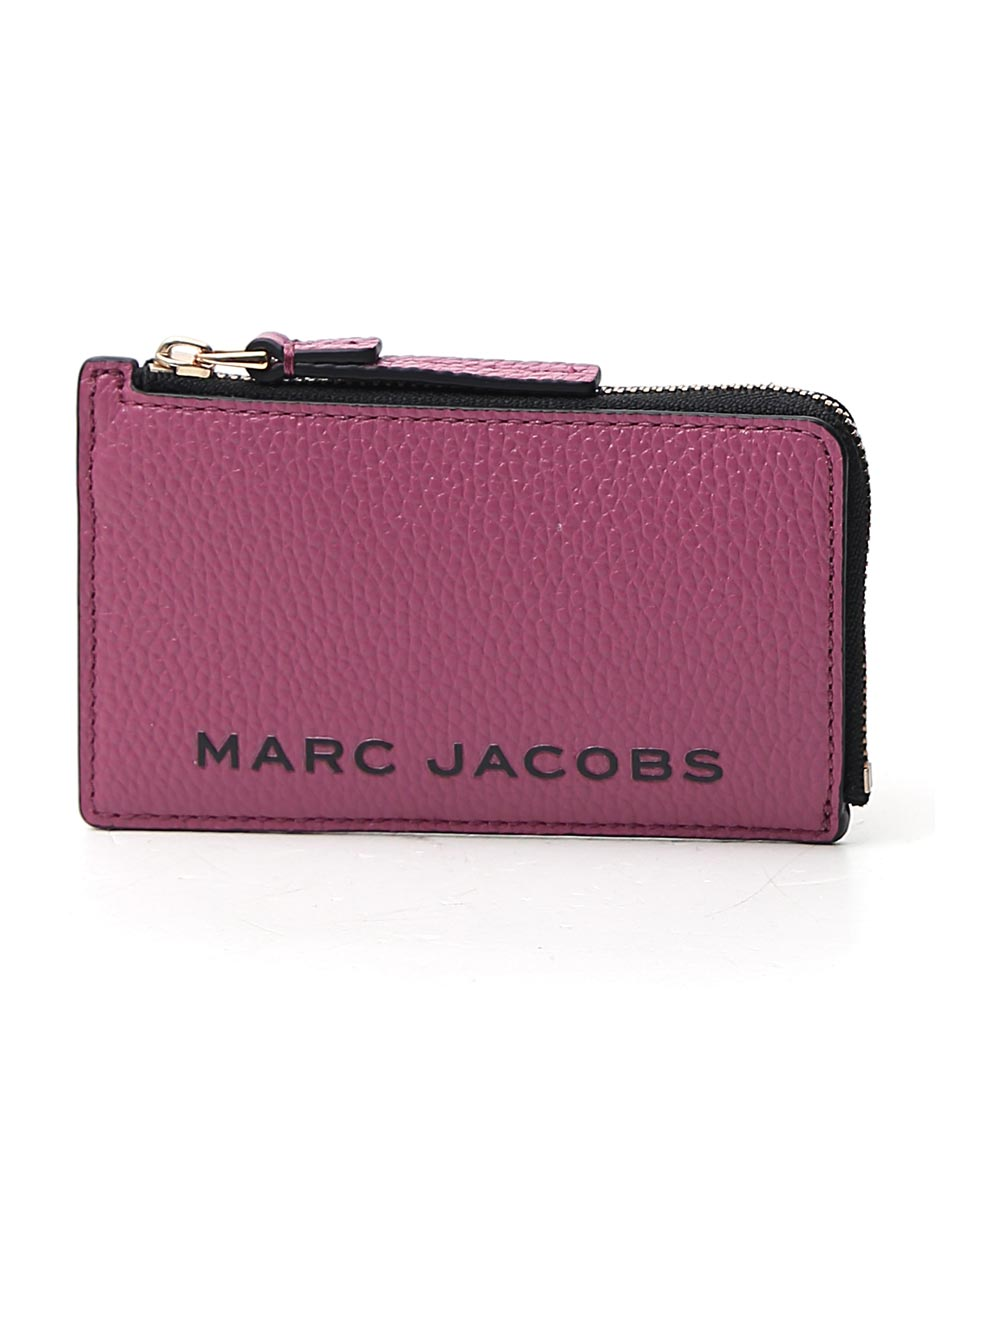 Marc Jacobs MARC JACOBS THE BOLD SMALL TOP ZIP WALLET